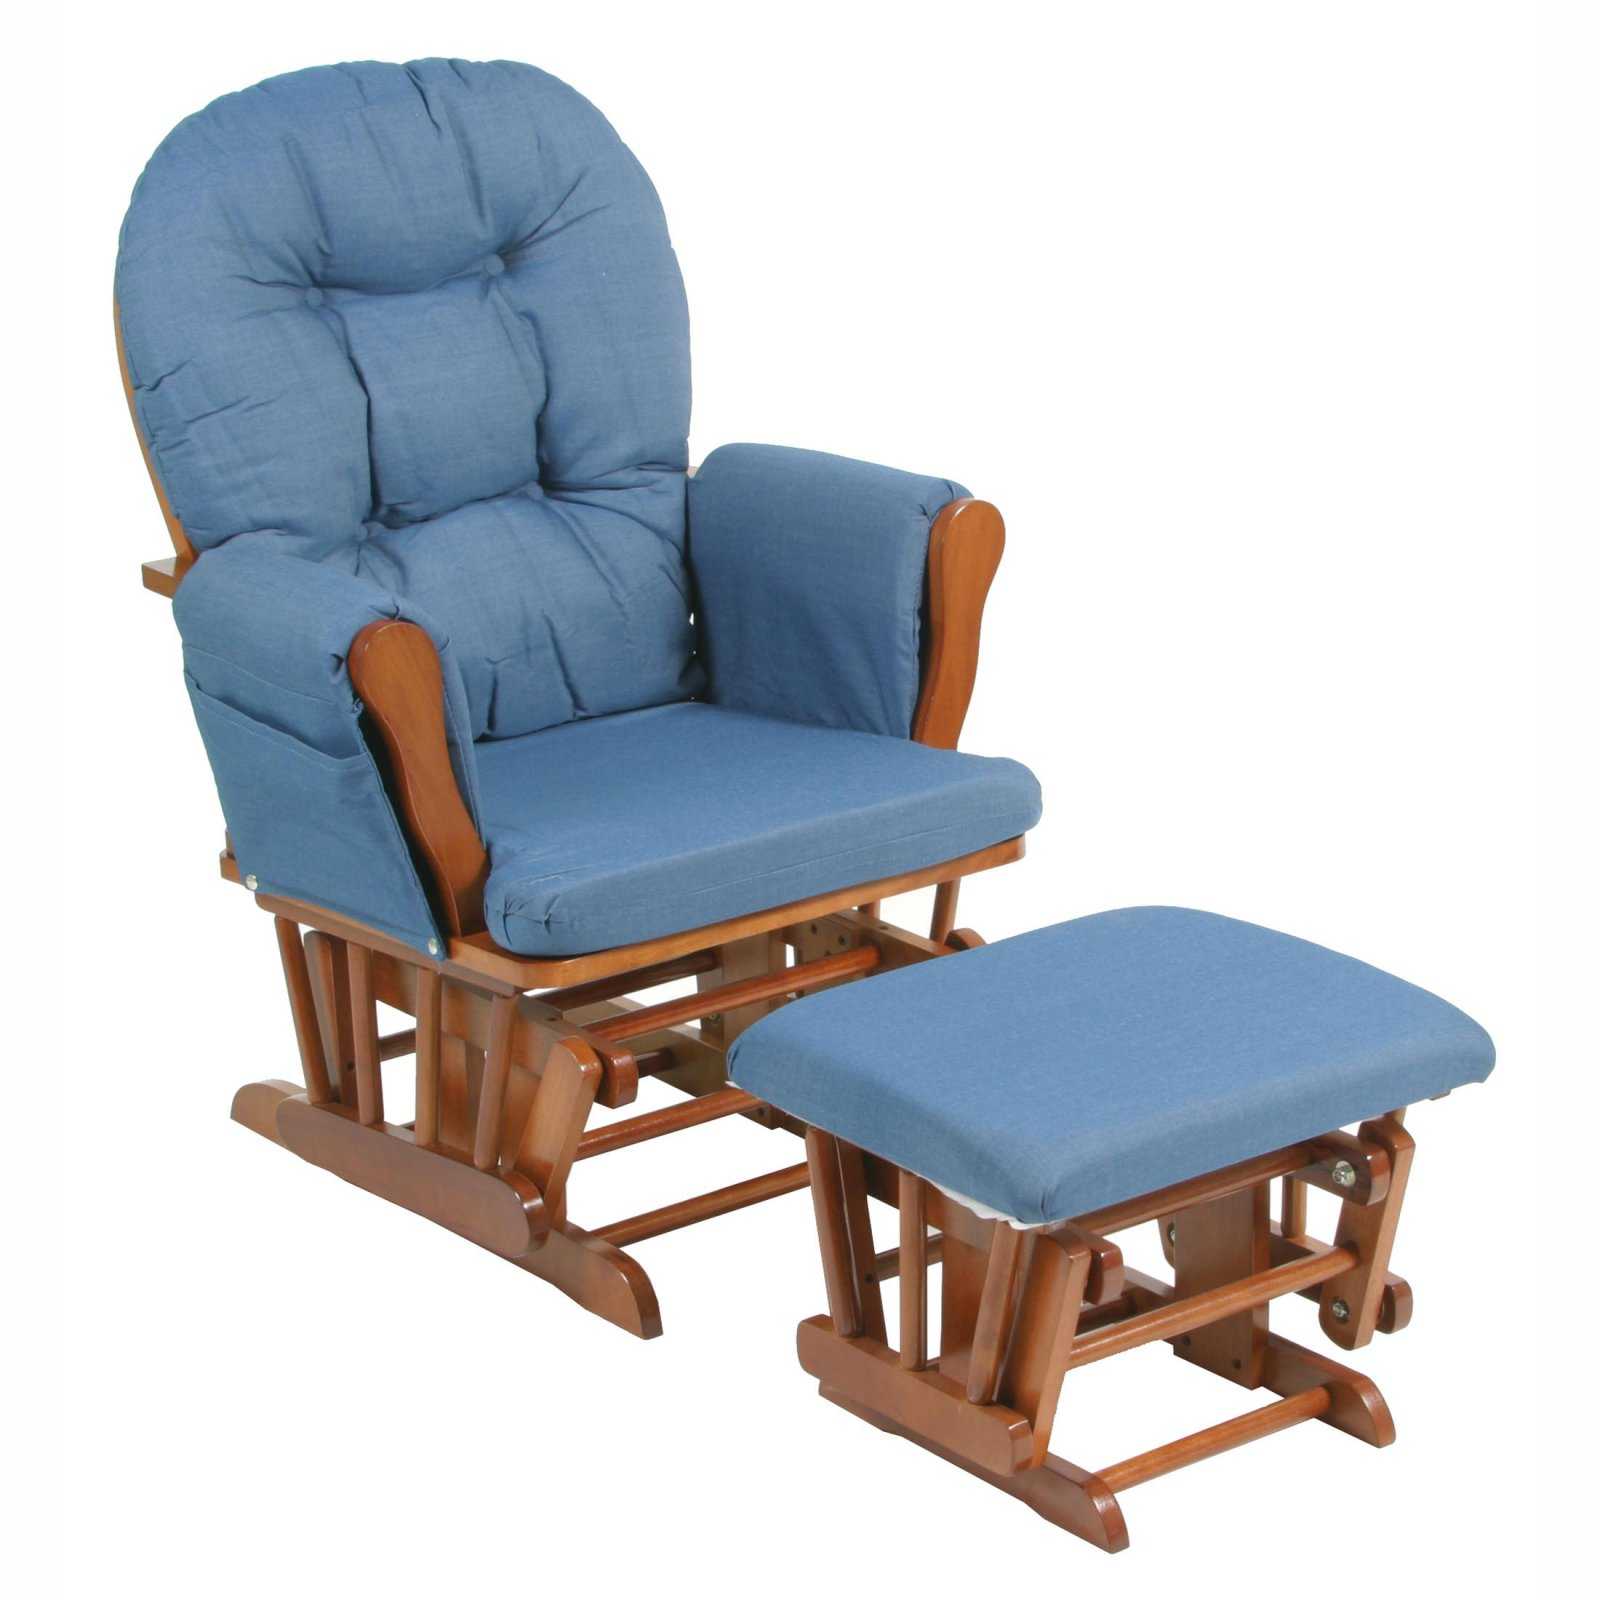 Storkcraft Bowback Glider and Ottoman Set - Cognac/Denim